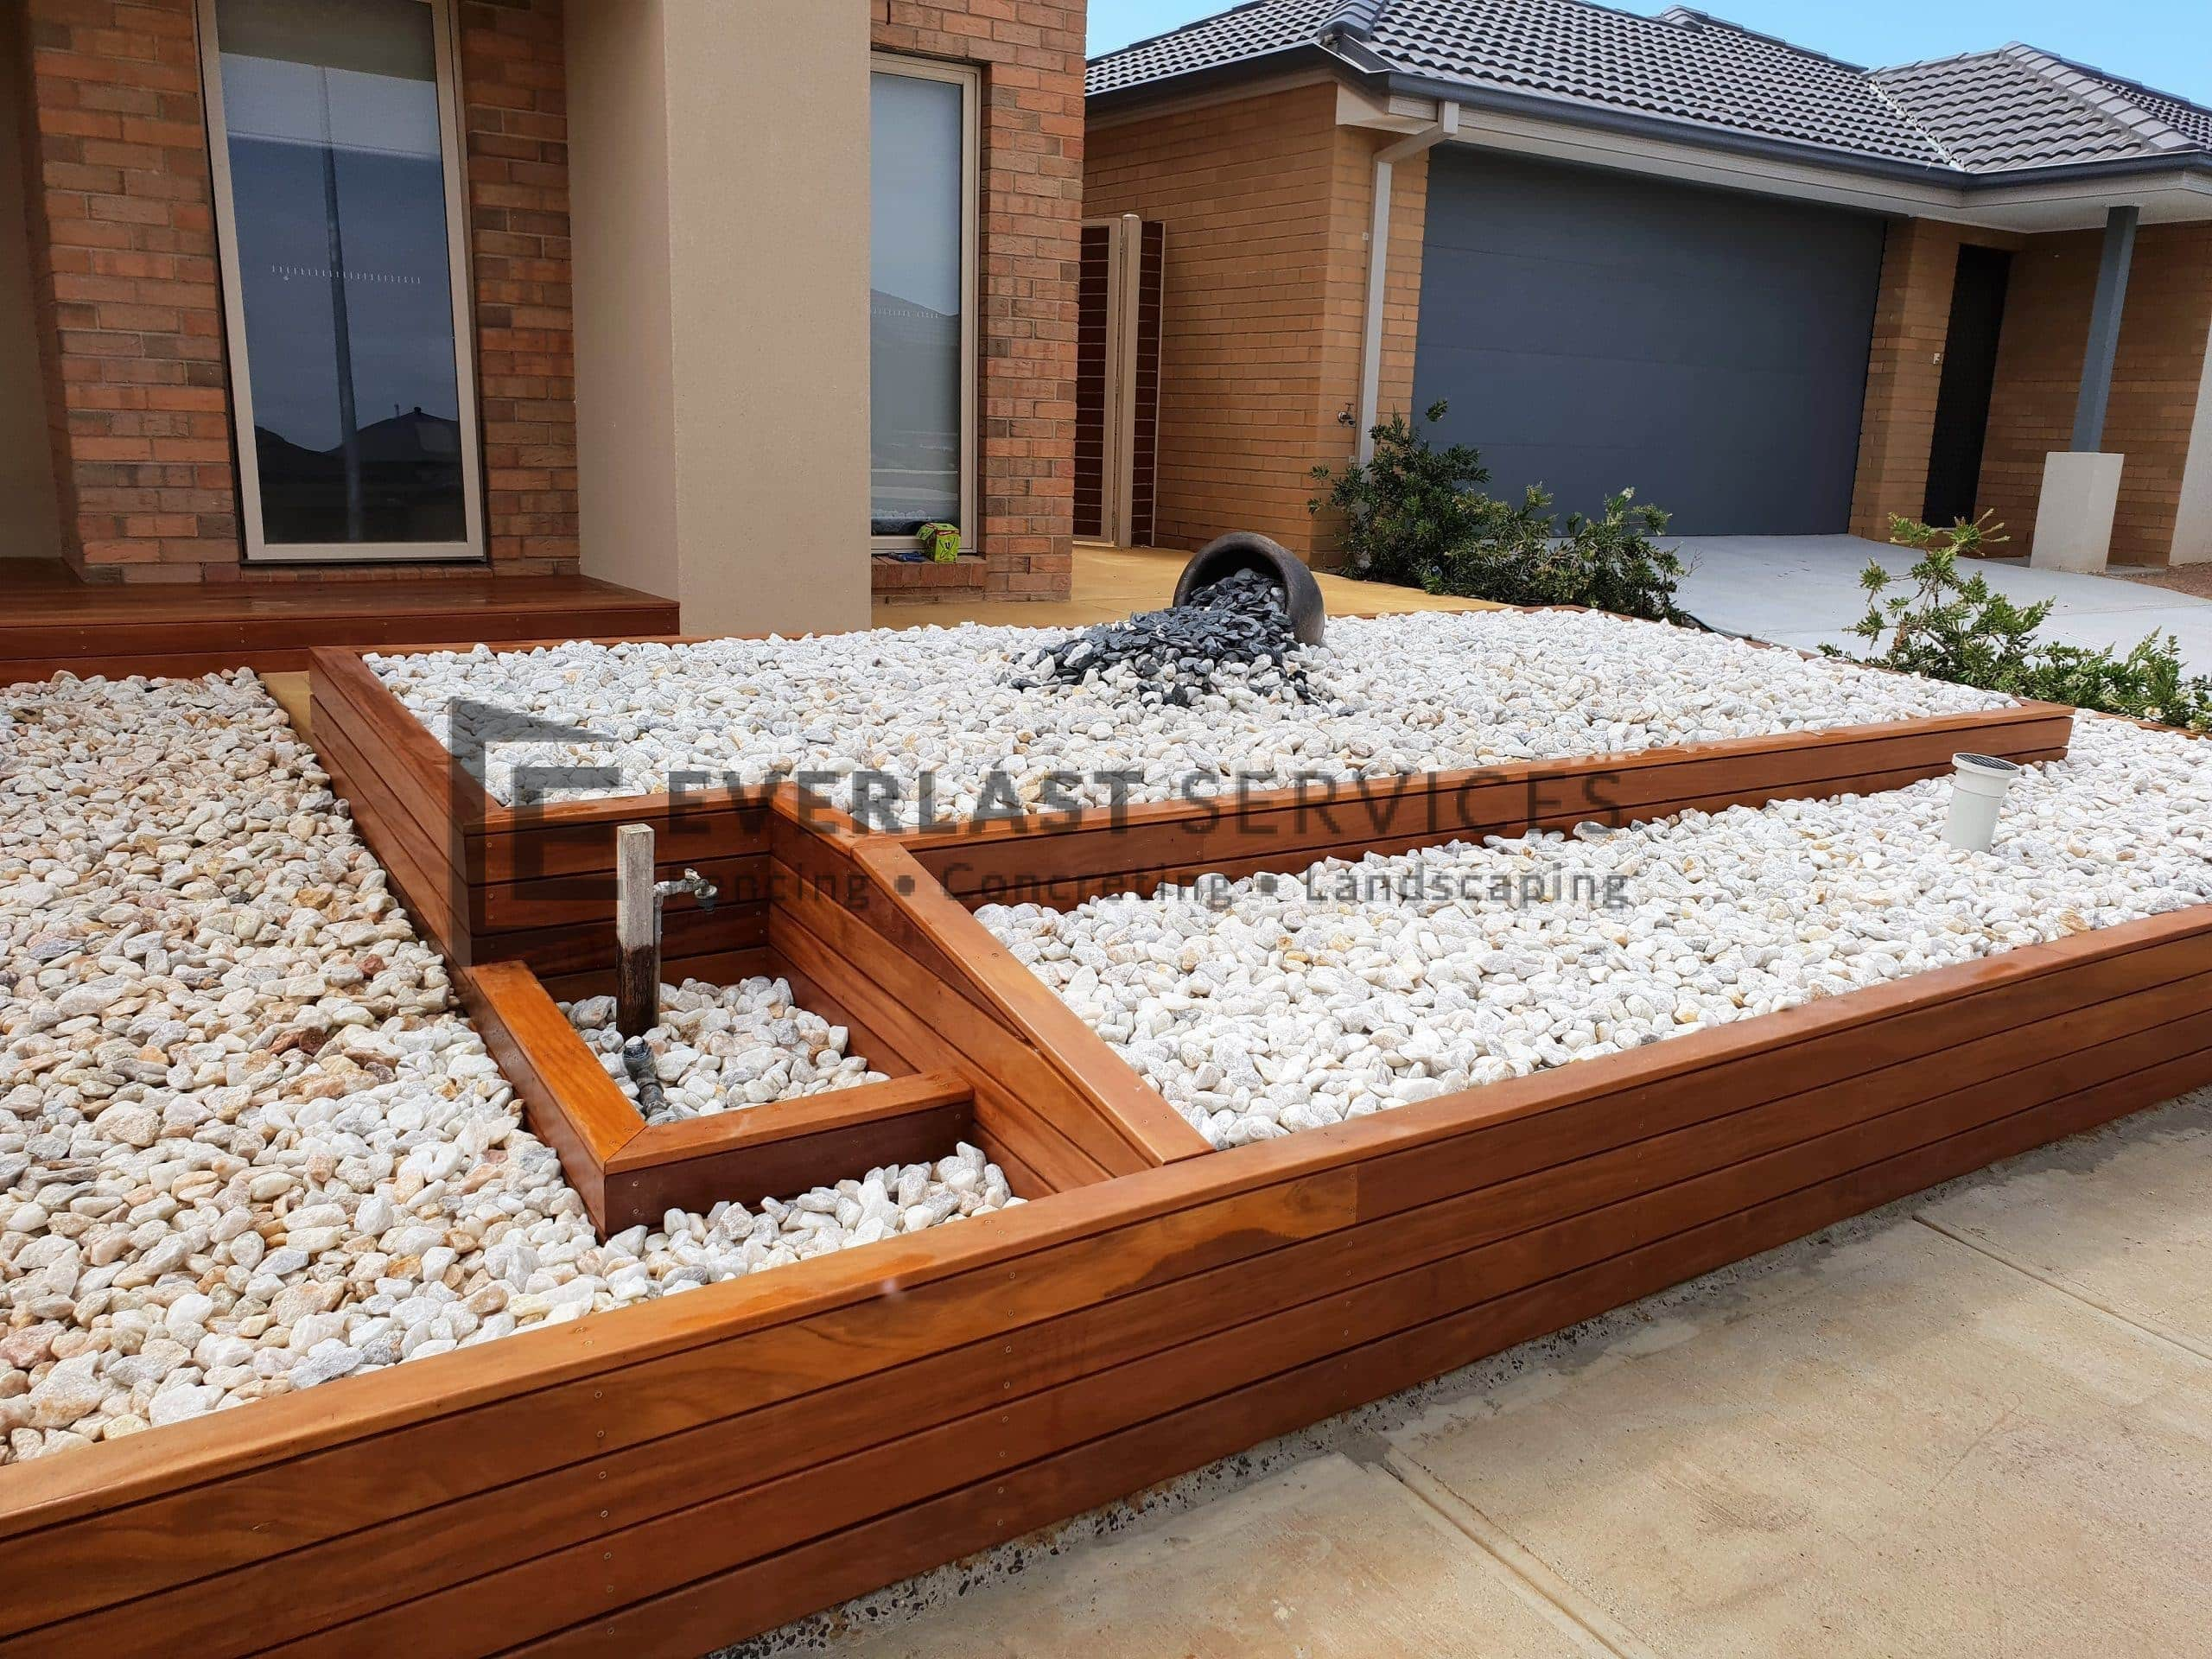 L227 - Decking Retaining Wall with Gardenbox